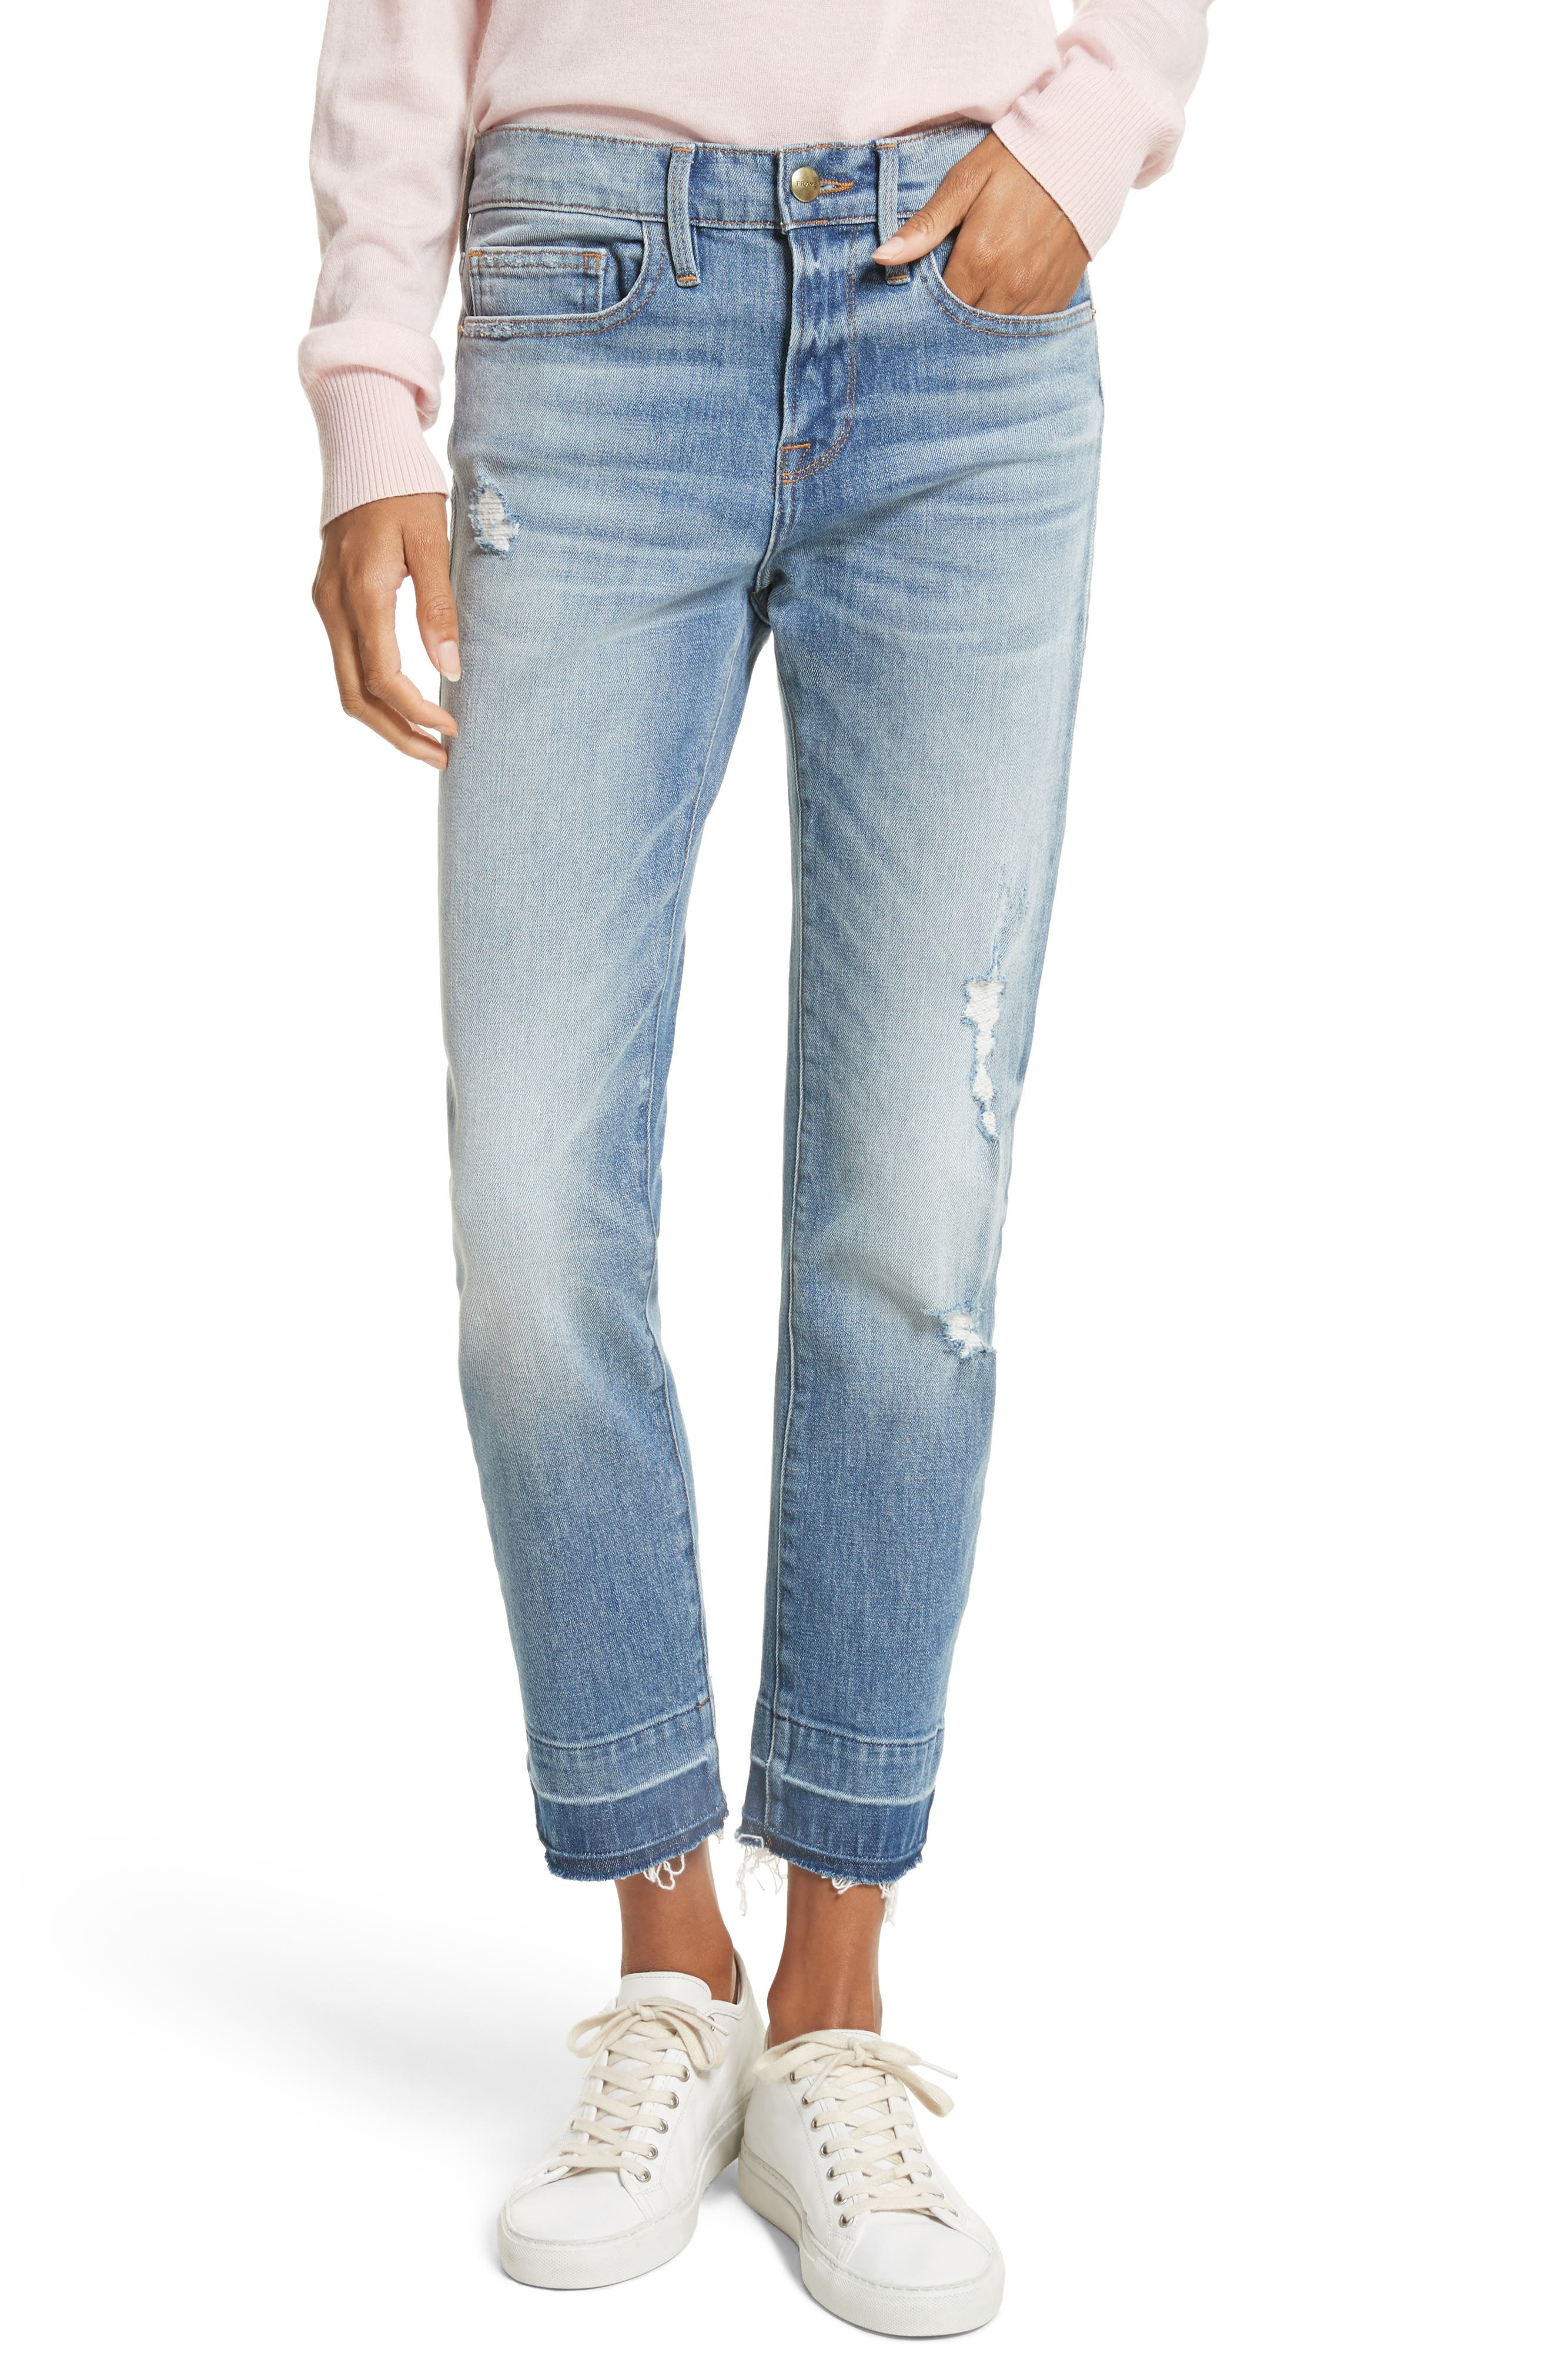 Alternate Image 1 Selected - FRAME Le Boy Ripped High Waist Jeans (Klinedale)